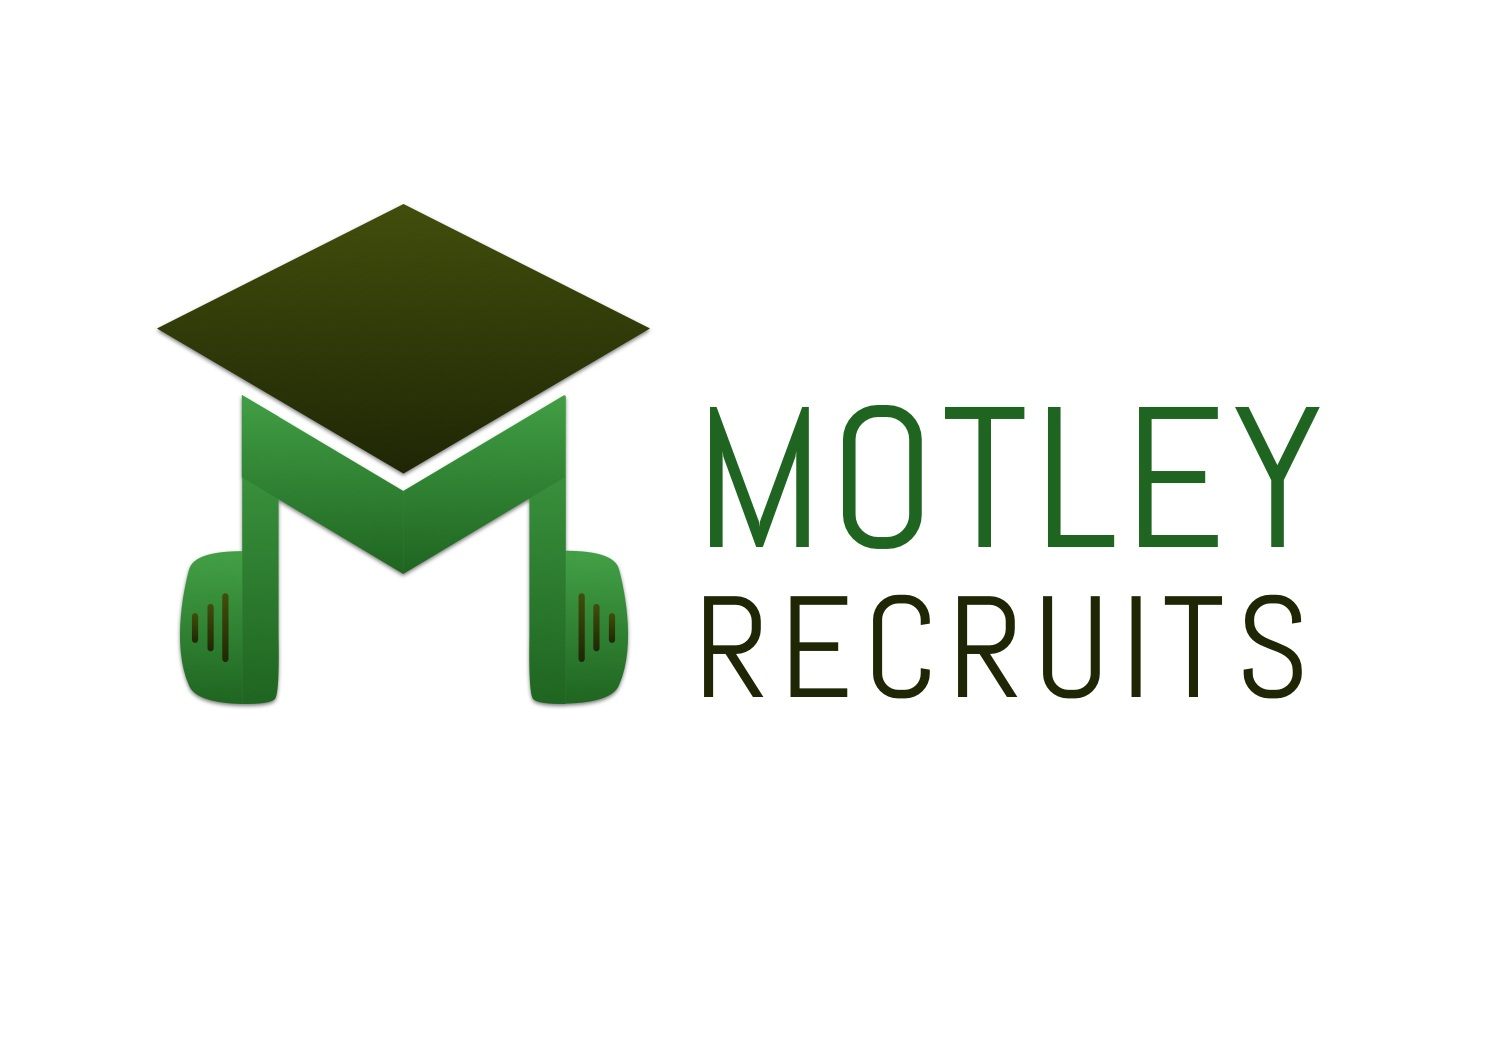 Web App Design - MOTLEY RECRUITS